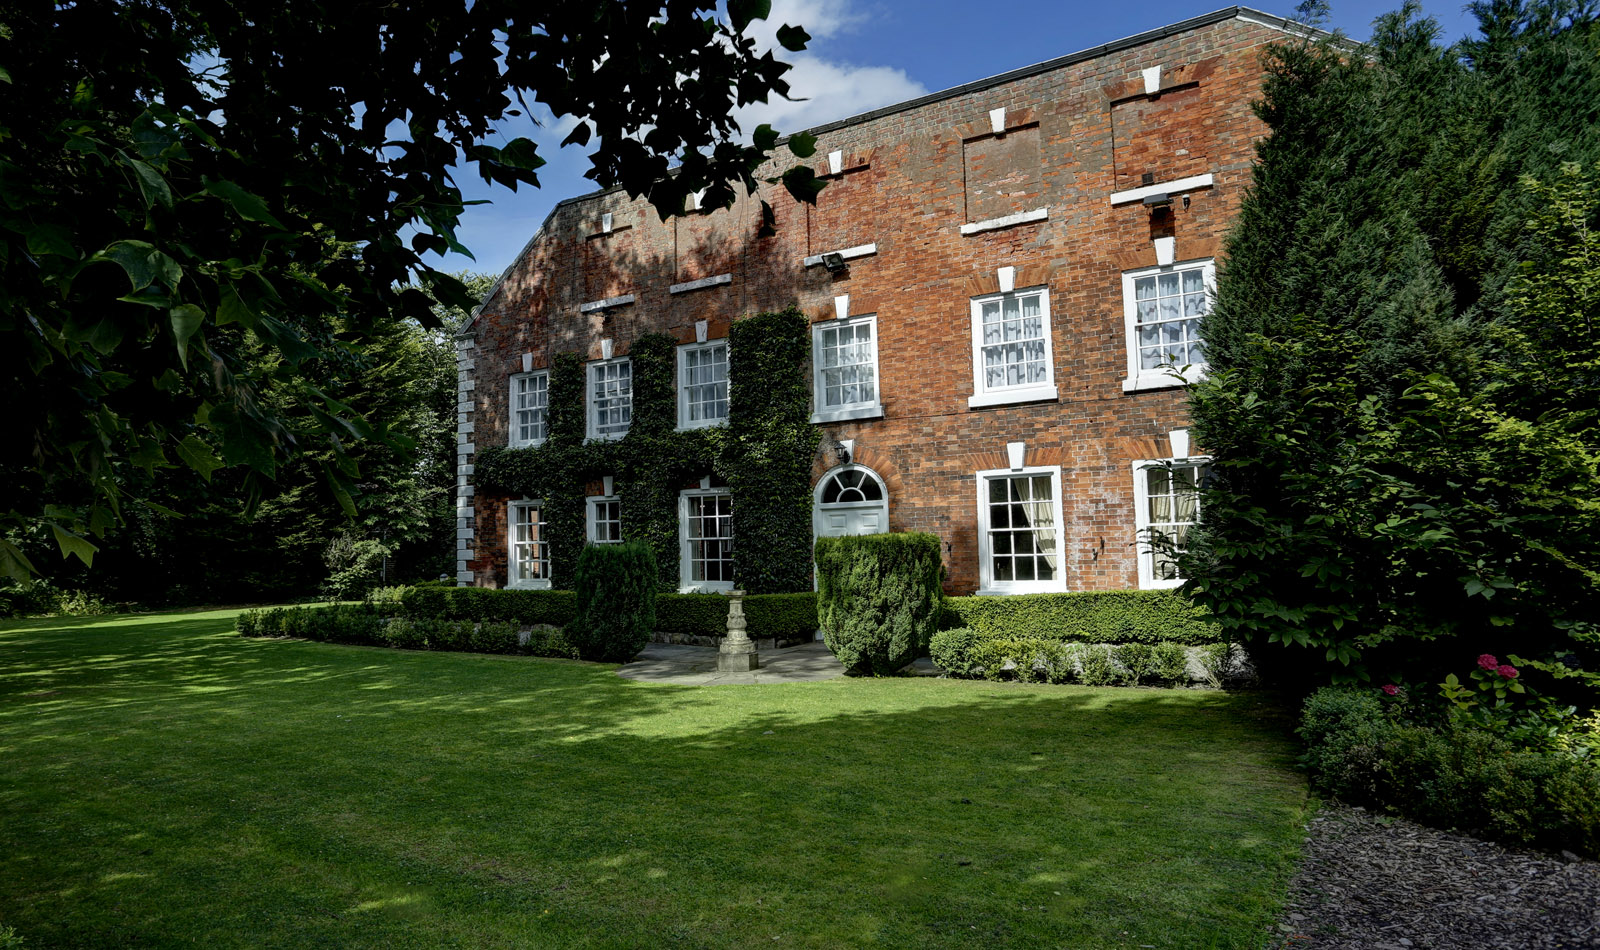 History of the Dower House